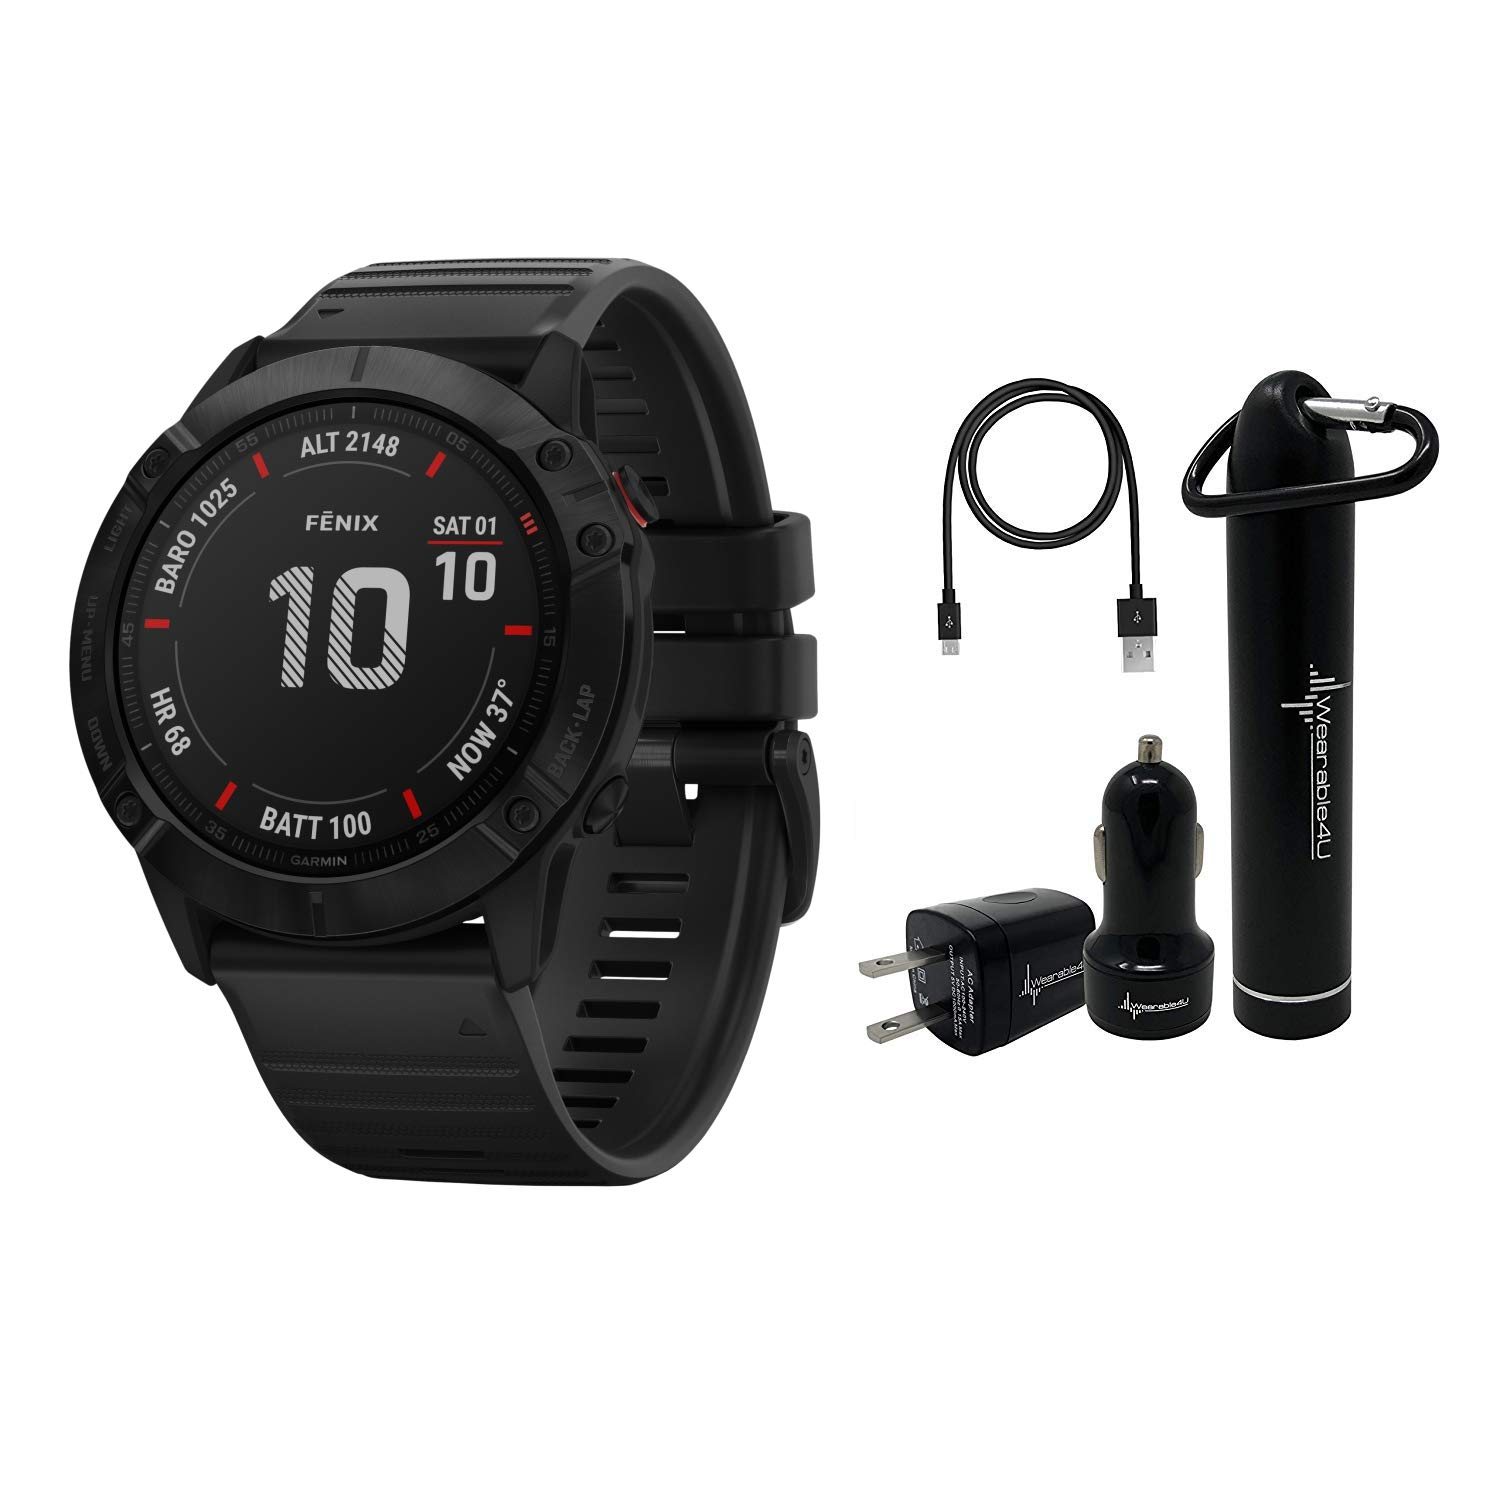 Garmin Fenix 6X Premium Multisport GPS Watches with Pulse OX, Routable Maps and Music with Included Wearable4U Power Pack Bundle (PRO, Black with Black Band)